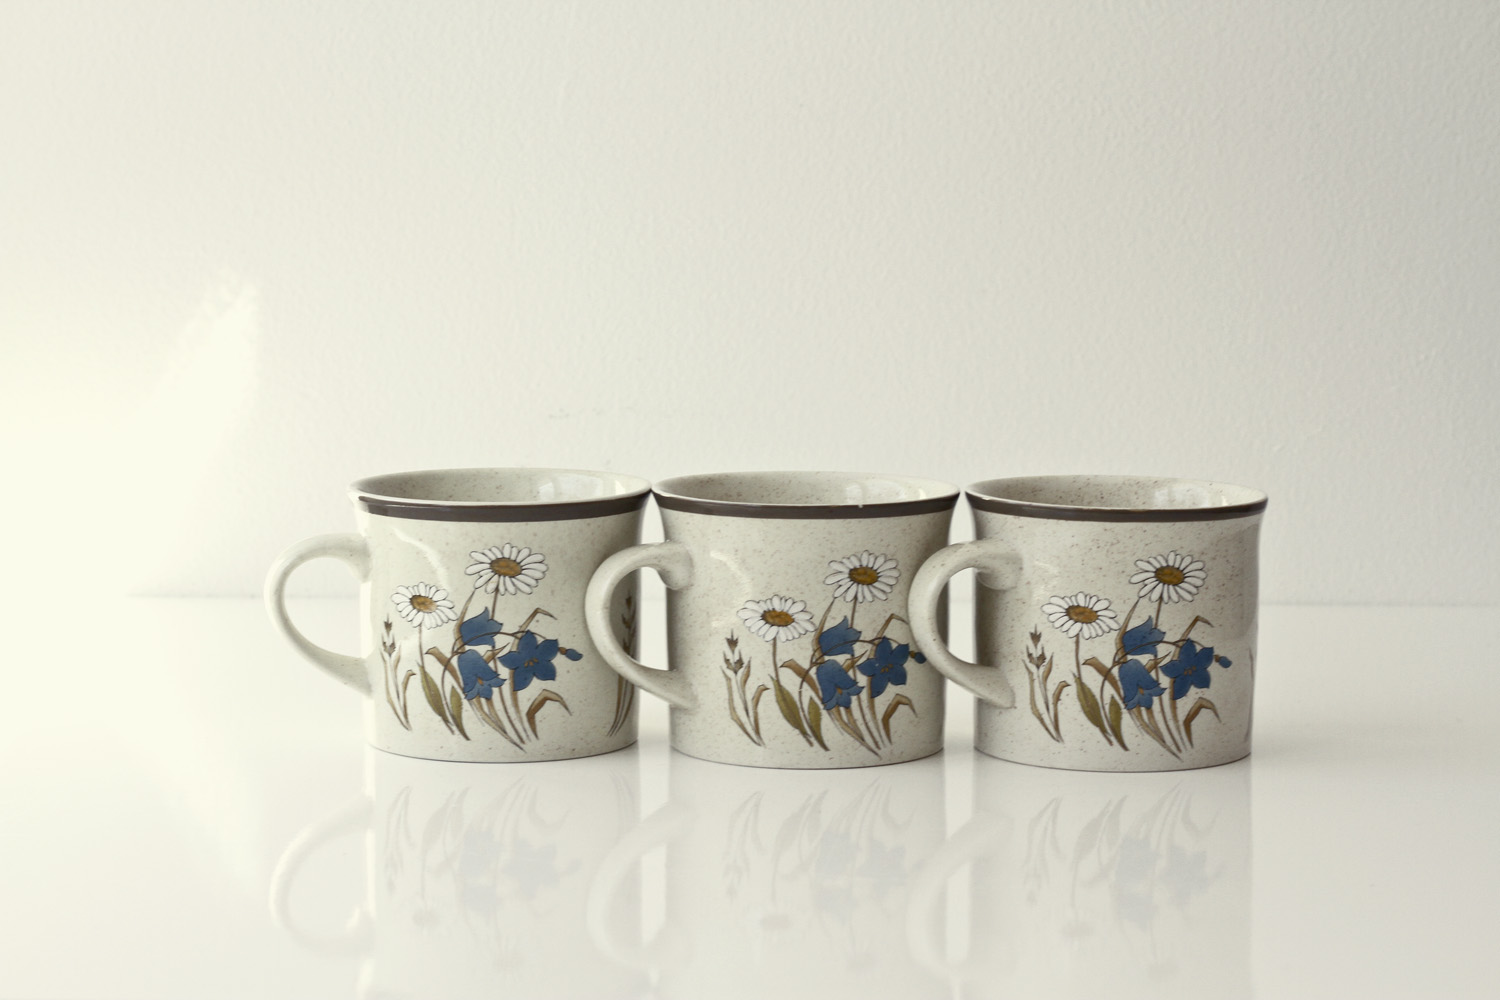 Thrift Store Finds: Royal Doulton mugs// Thrifted